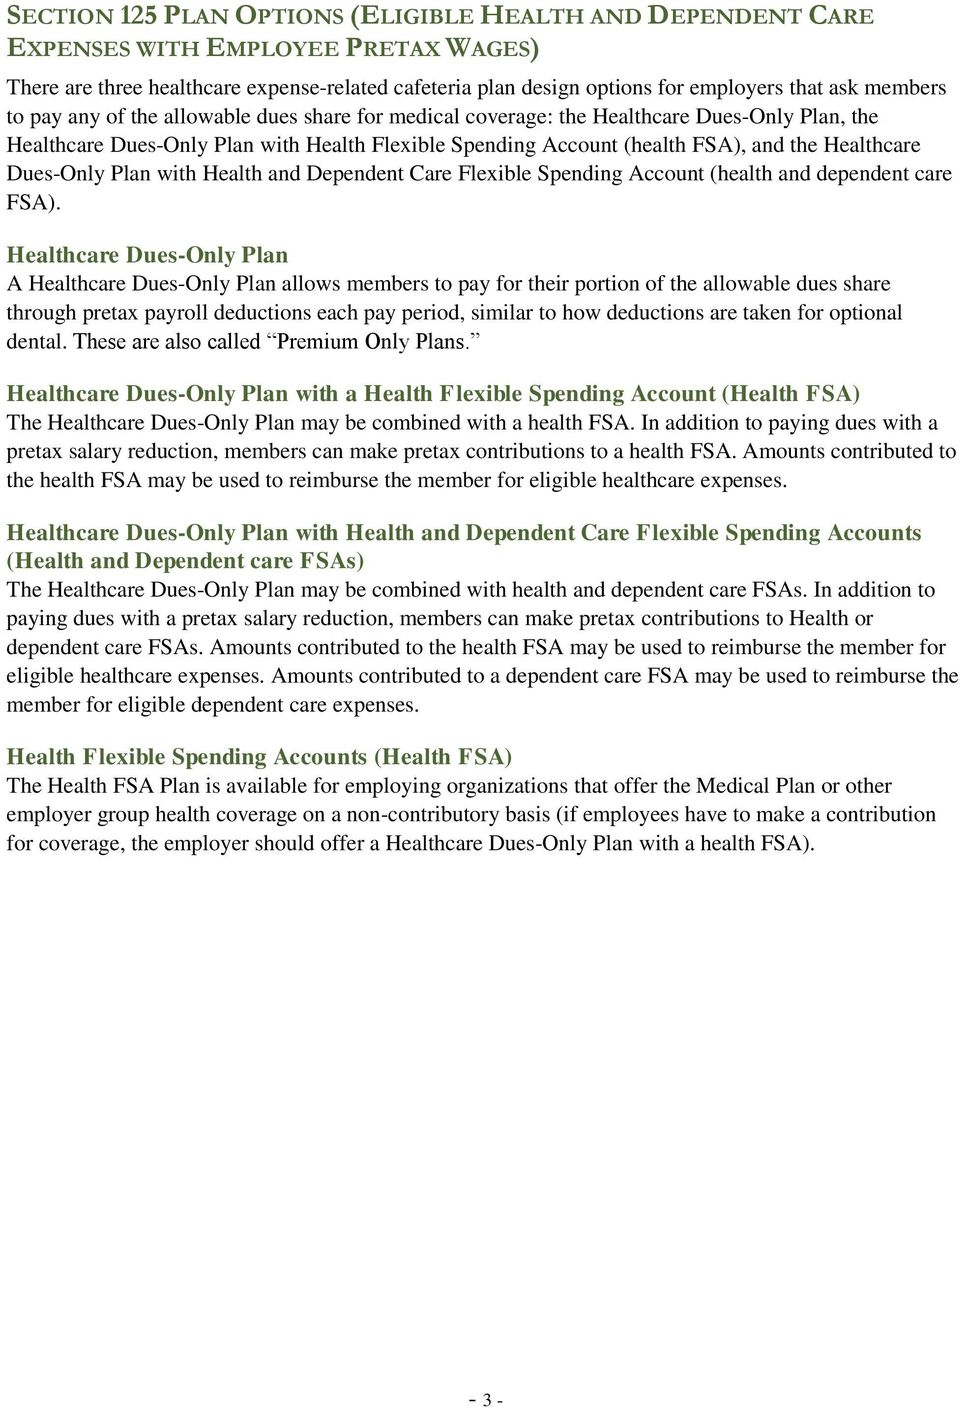 Healthcare Dues-Only Plan with Health and Dependent Care Flexible Spending Account (health and dependent care FSA).